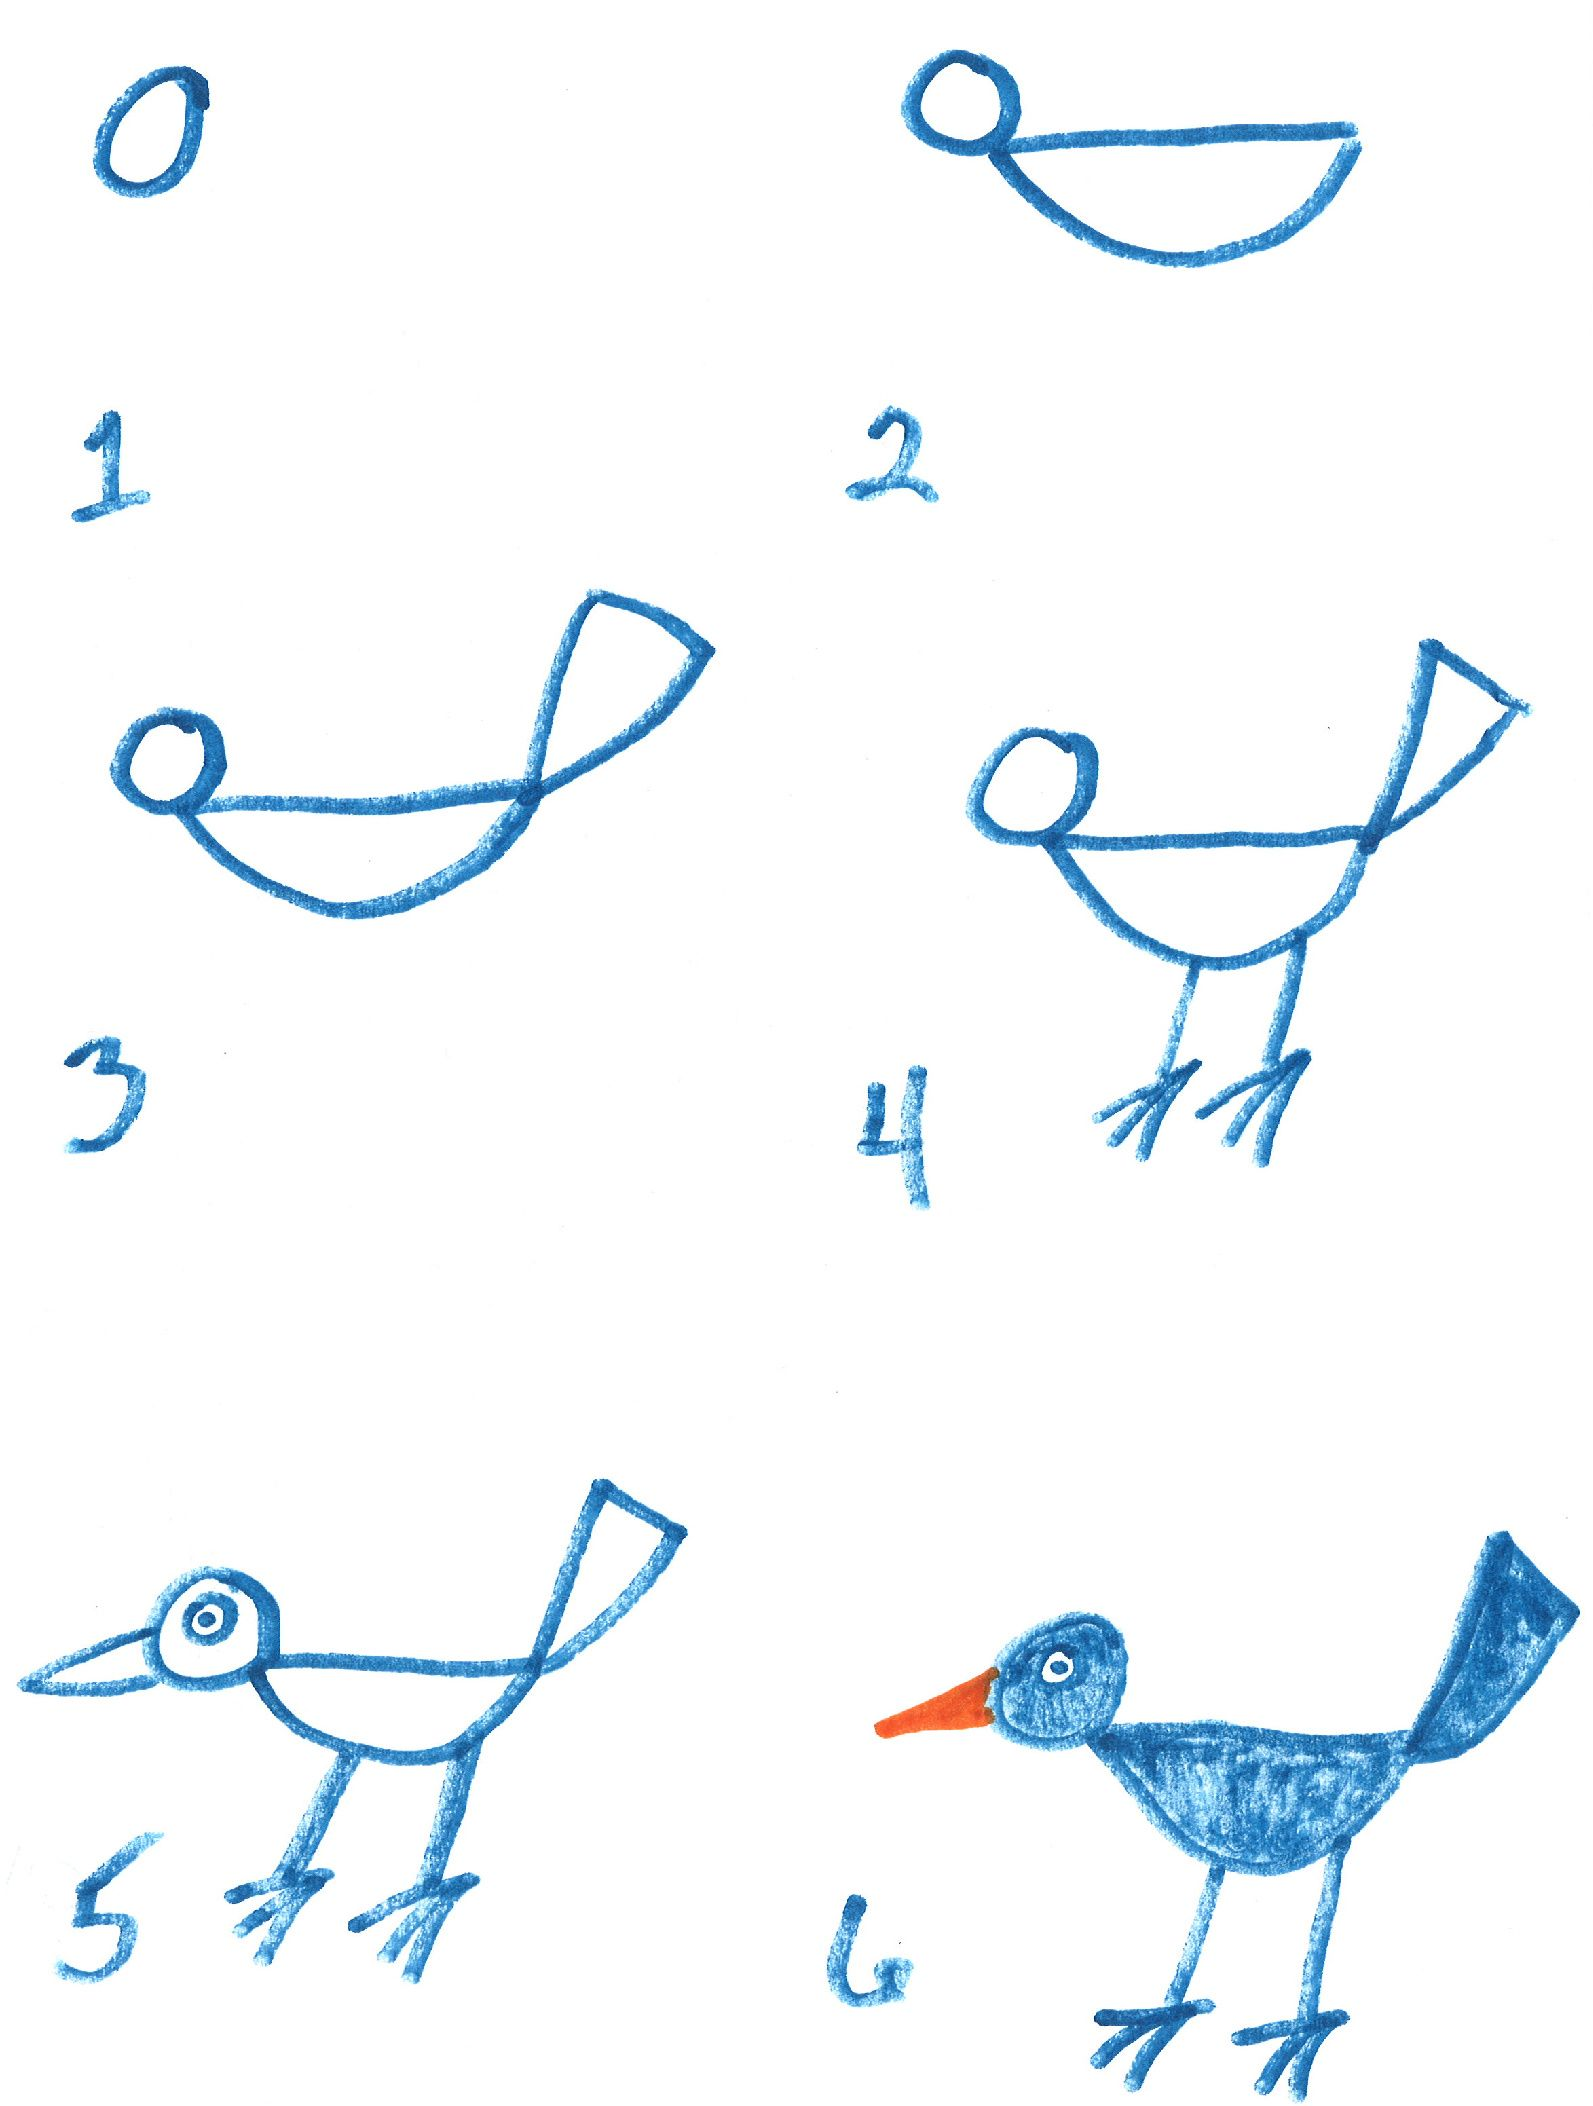 How To Draw A Bird Step By Step Easy With Pictures With